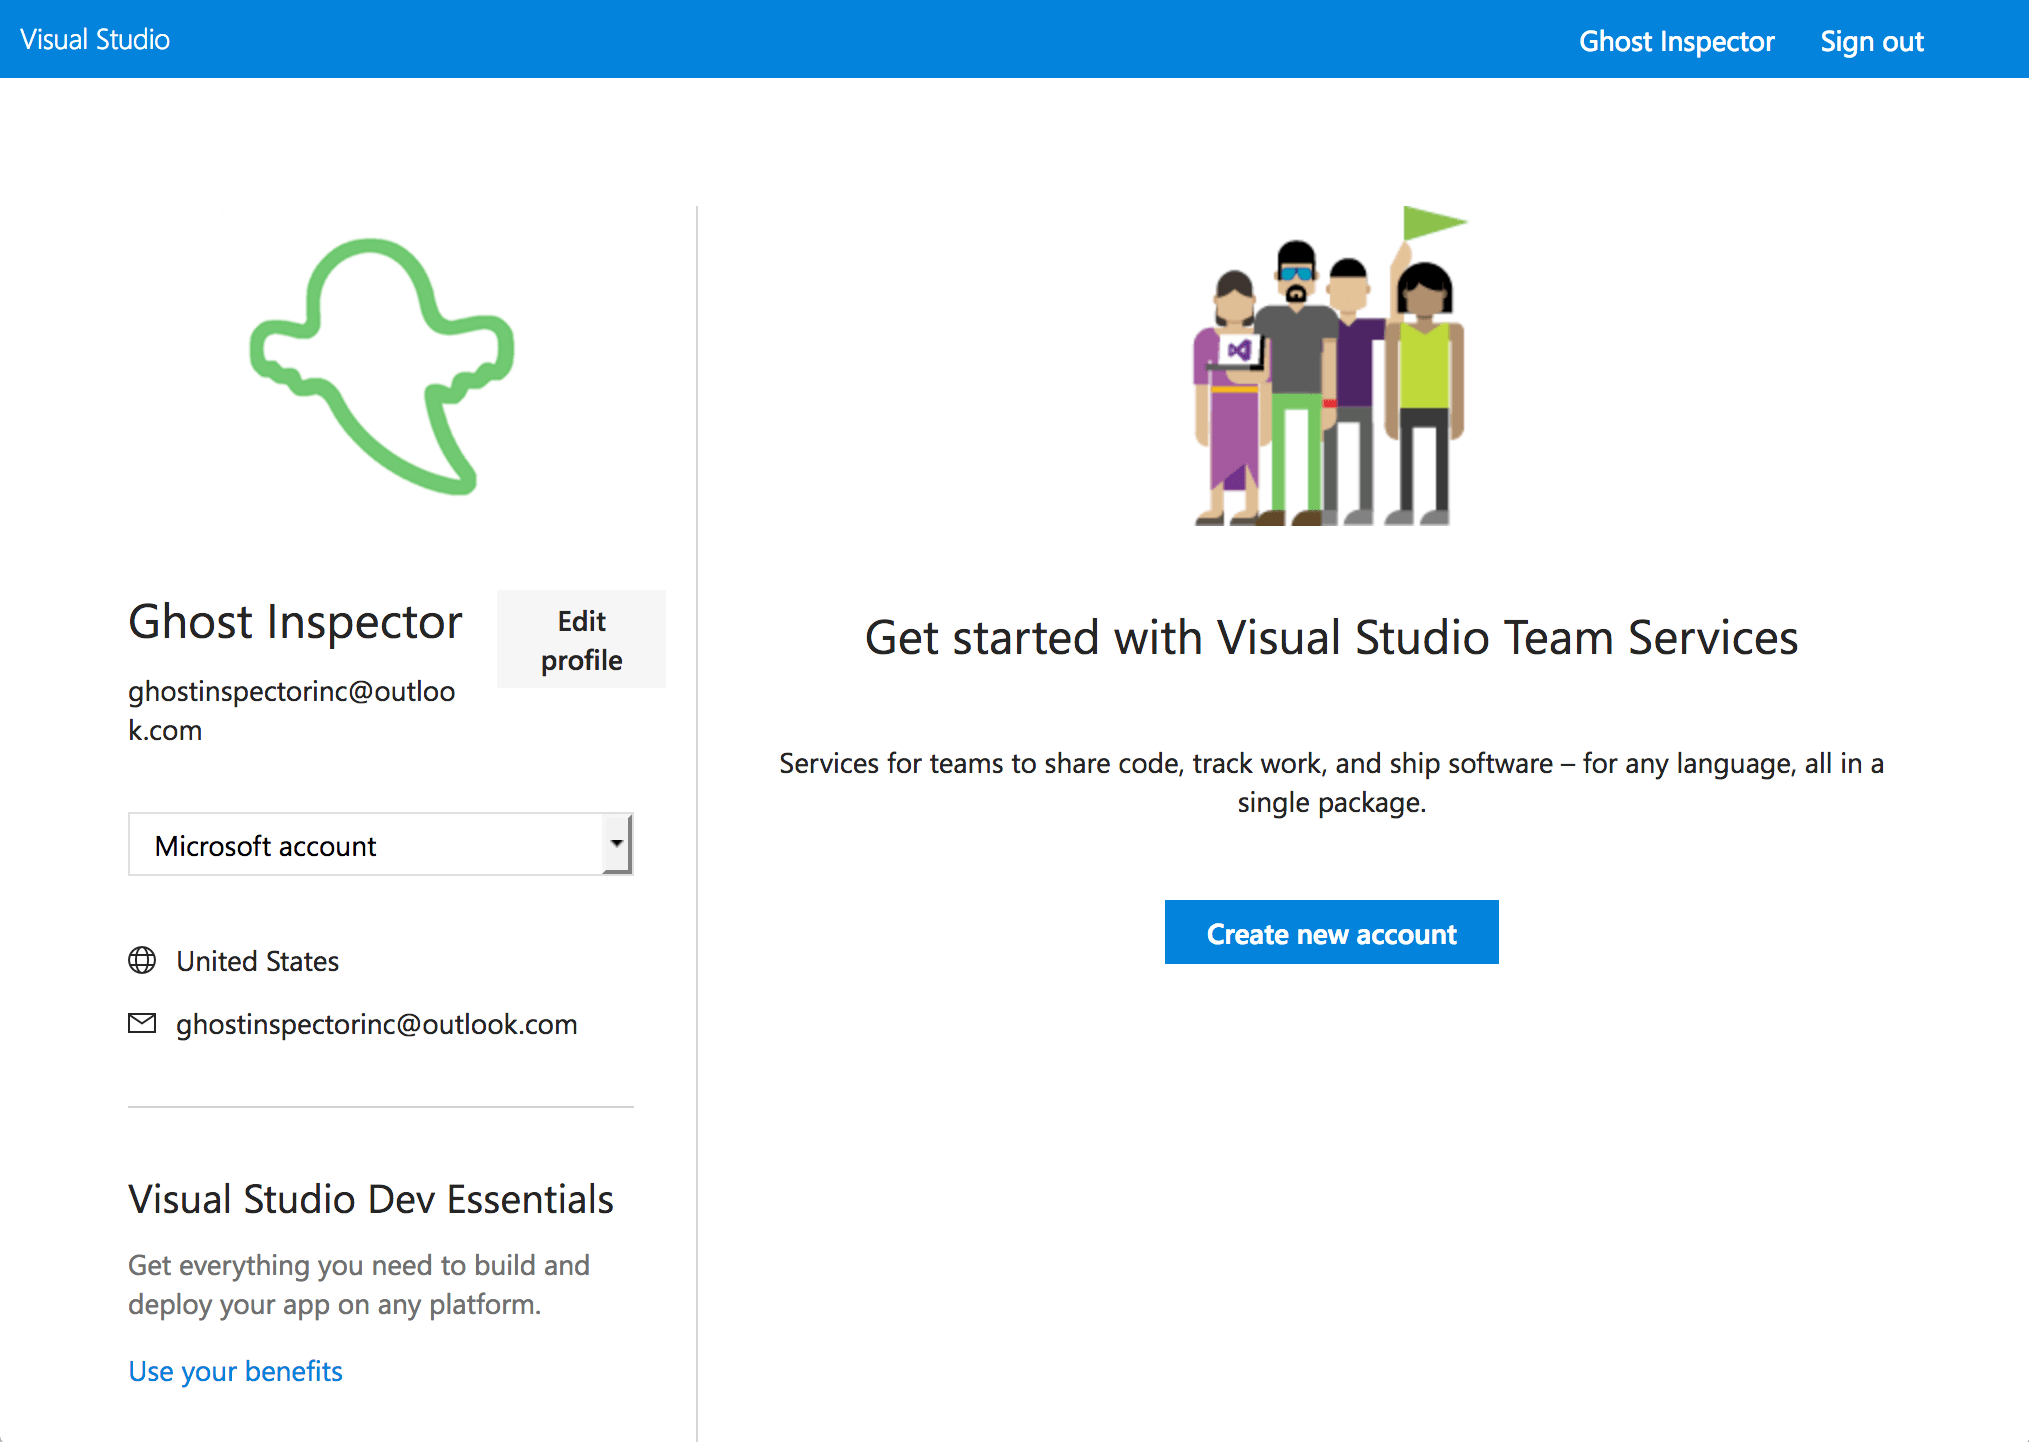 Create a new account in Visual Studio Team Services